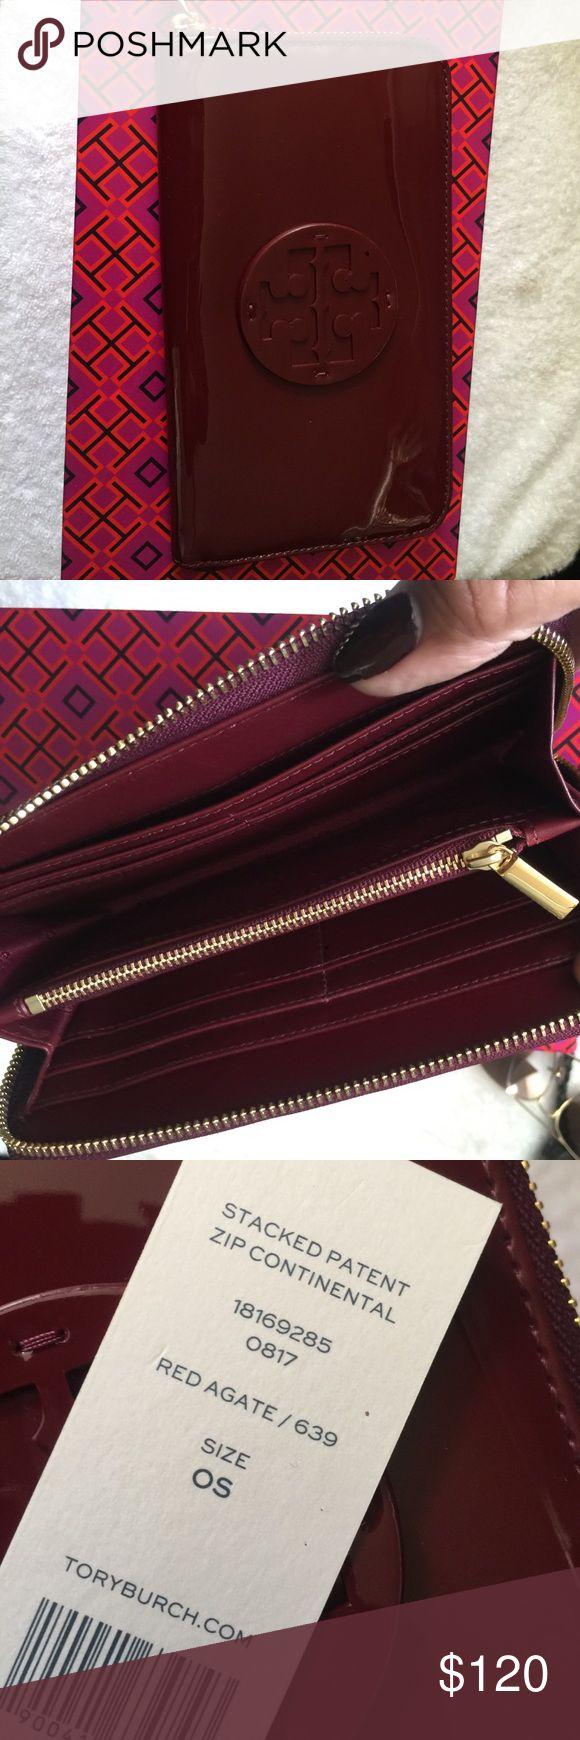 Tory Burch patient leather continental wallet Beautiful brand new Tory Burch continental wallet, the color is oxblood Tory Burch Bags Wallets